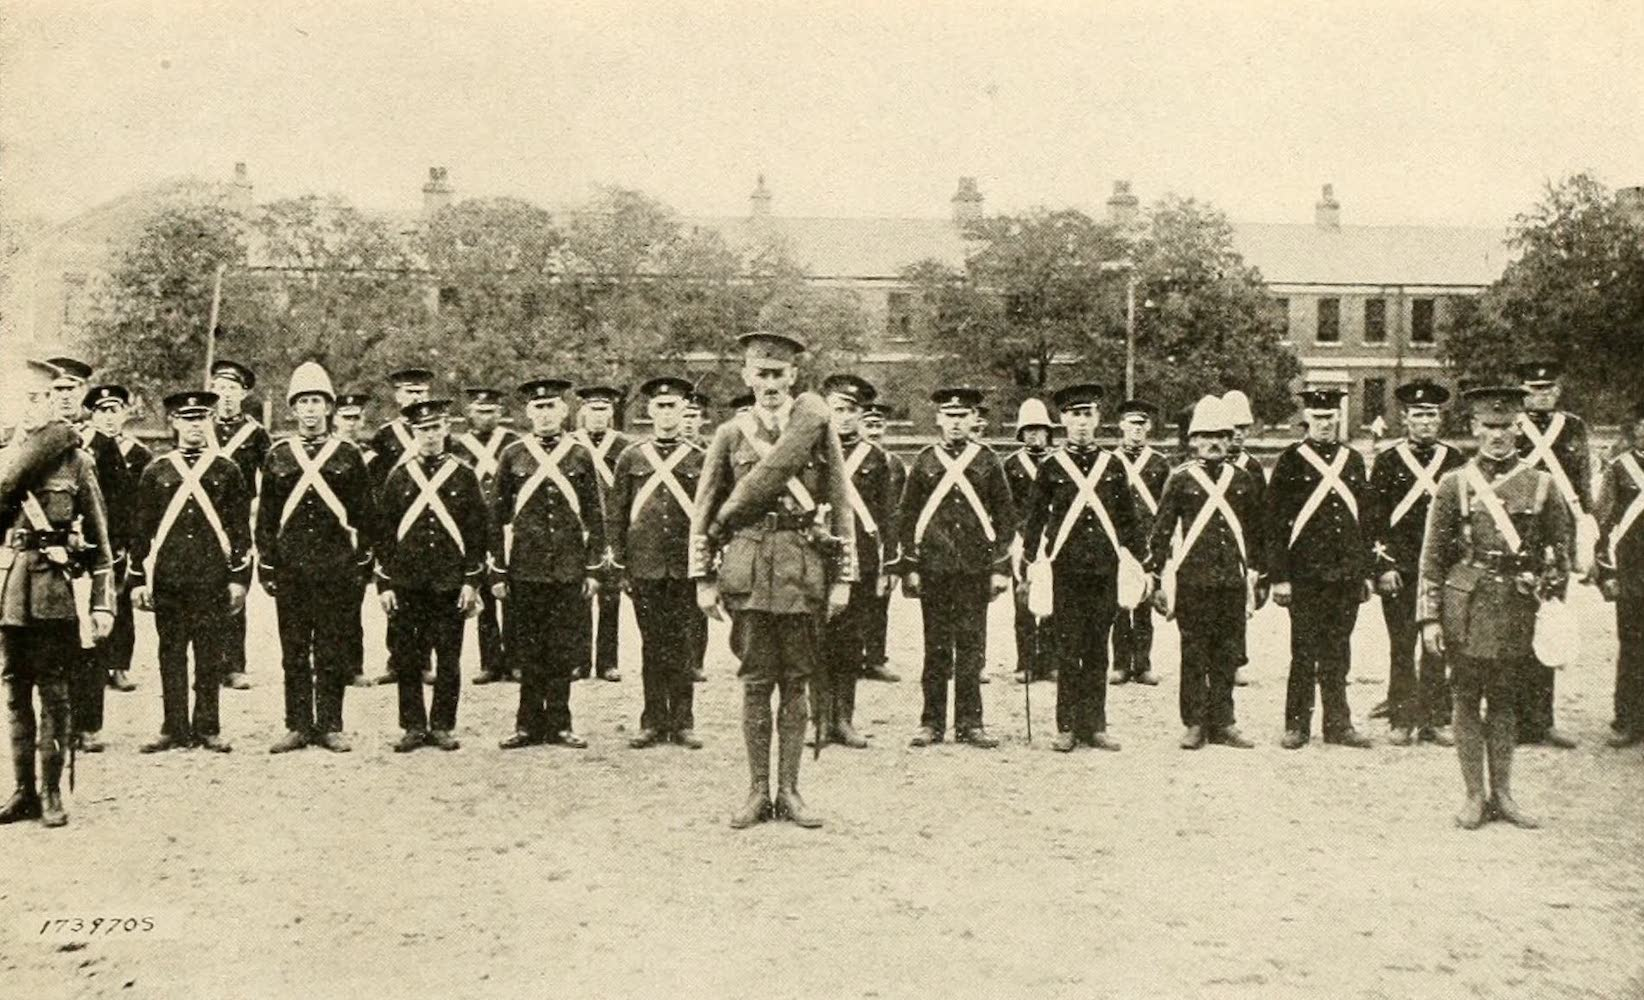 Laird & Lee's World's War Glimpses - Canada's Crack 66th Ready for the Front (1914)